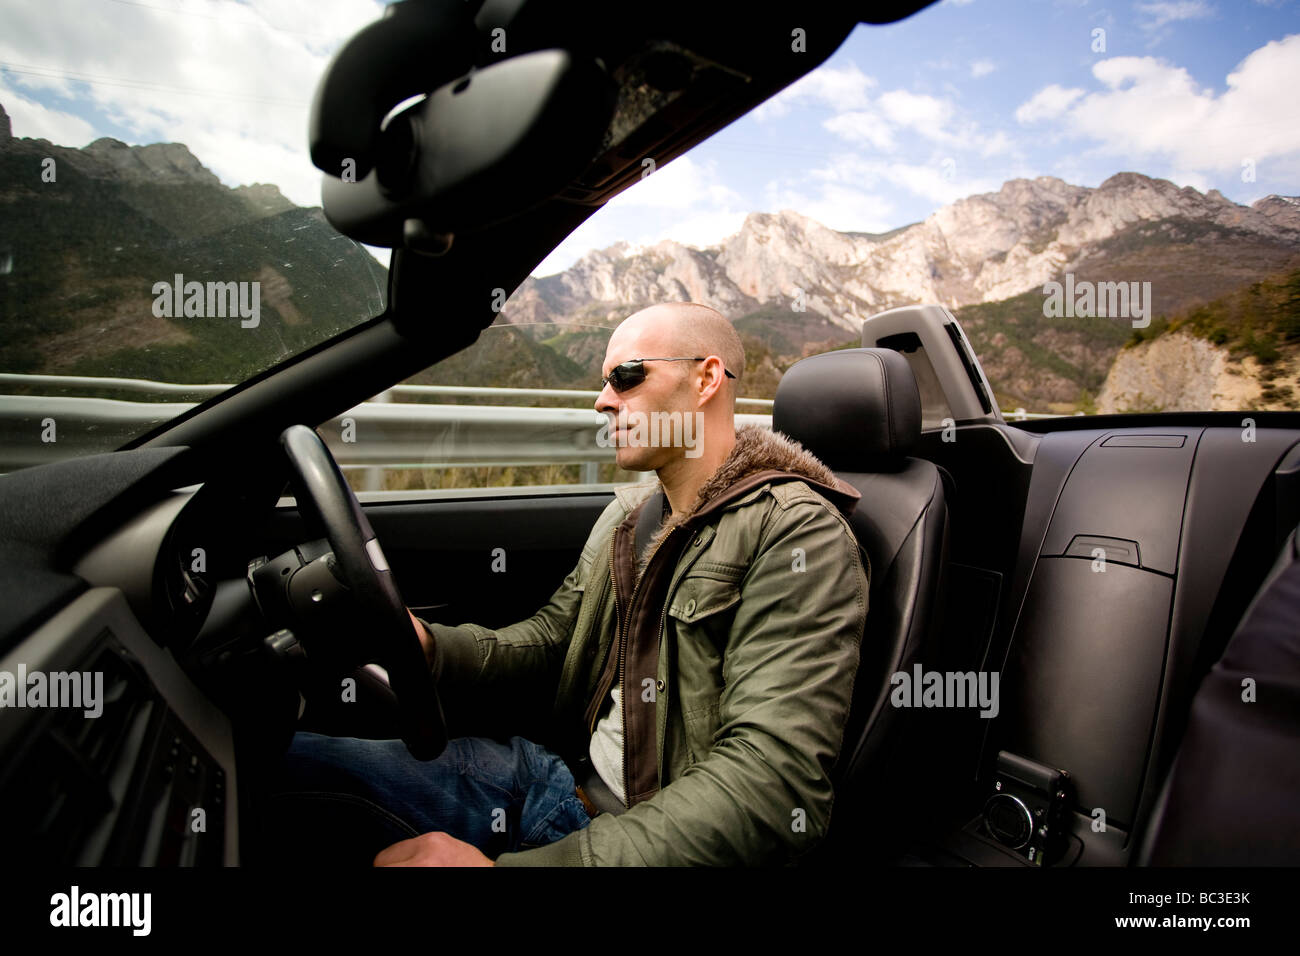 Driving through the Pyrenees and Andorra in an open top sports car. - Stock Image